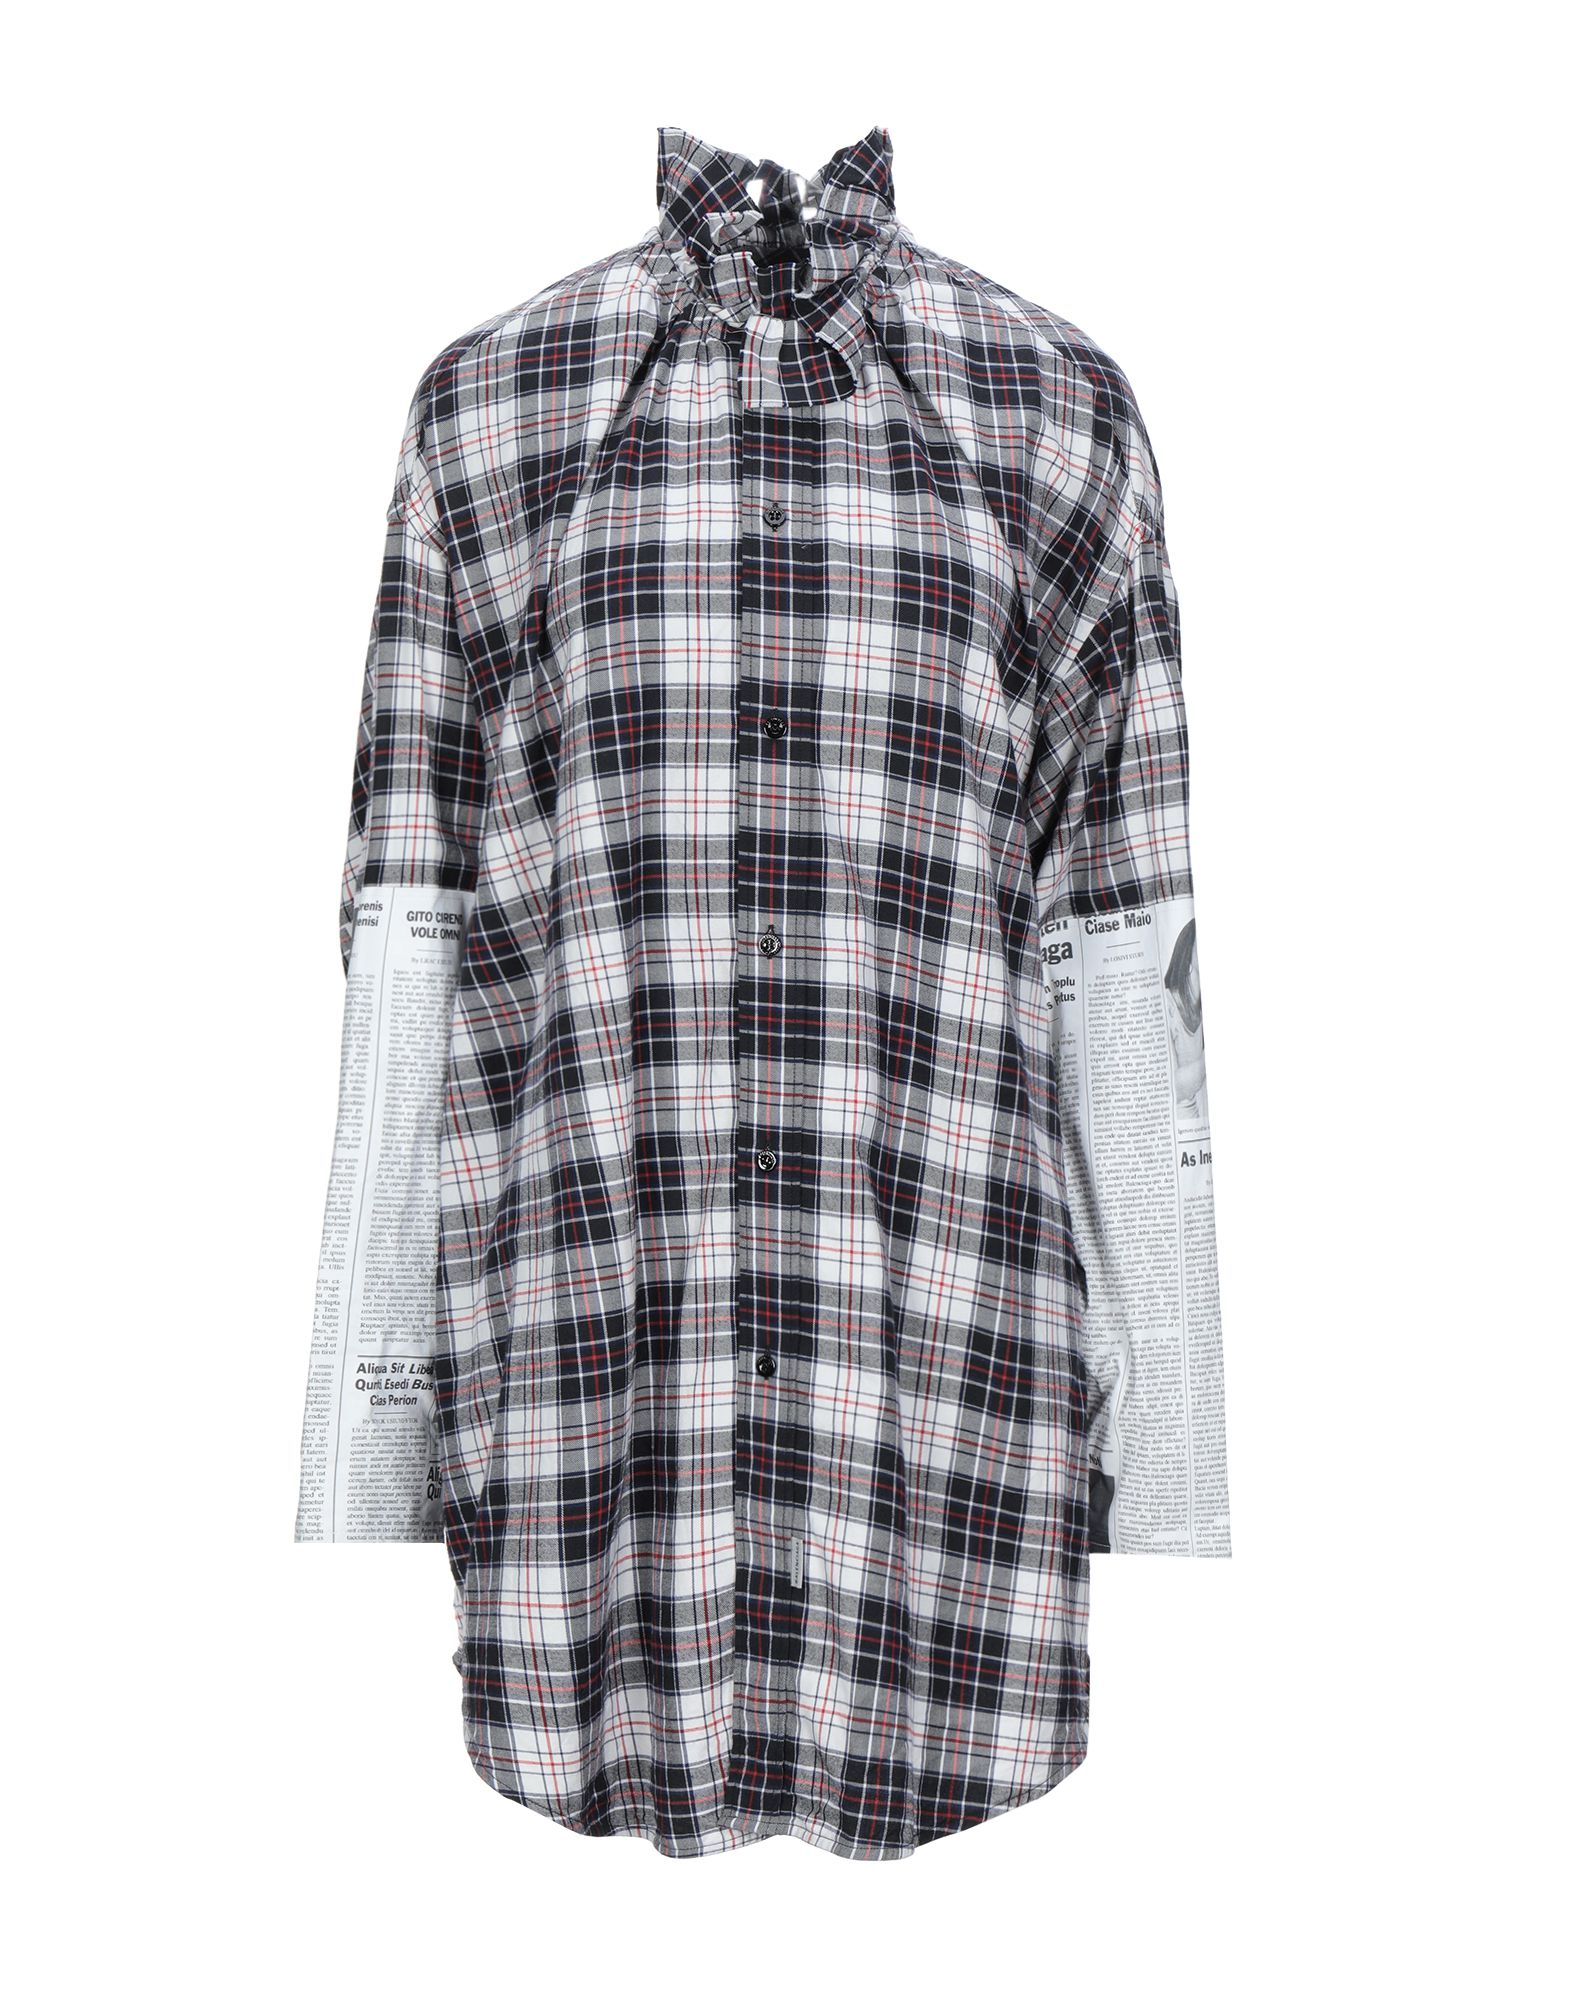 BALENCIAGA Shirts - Item 38921201